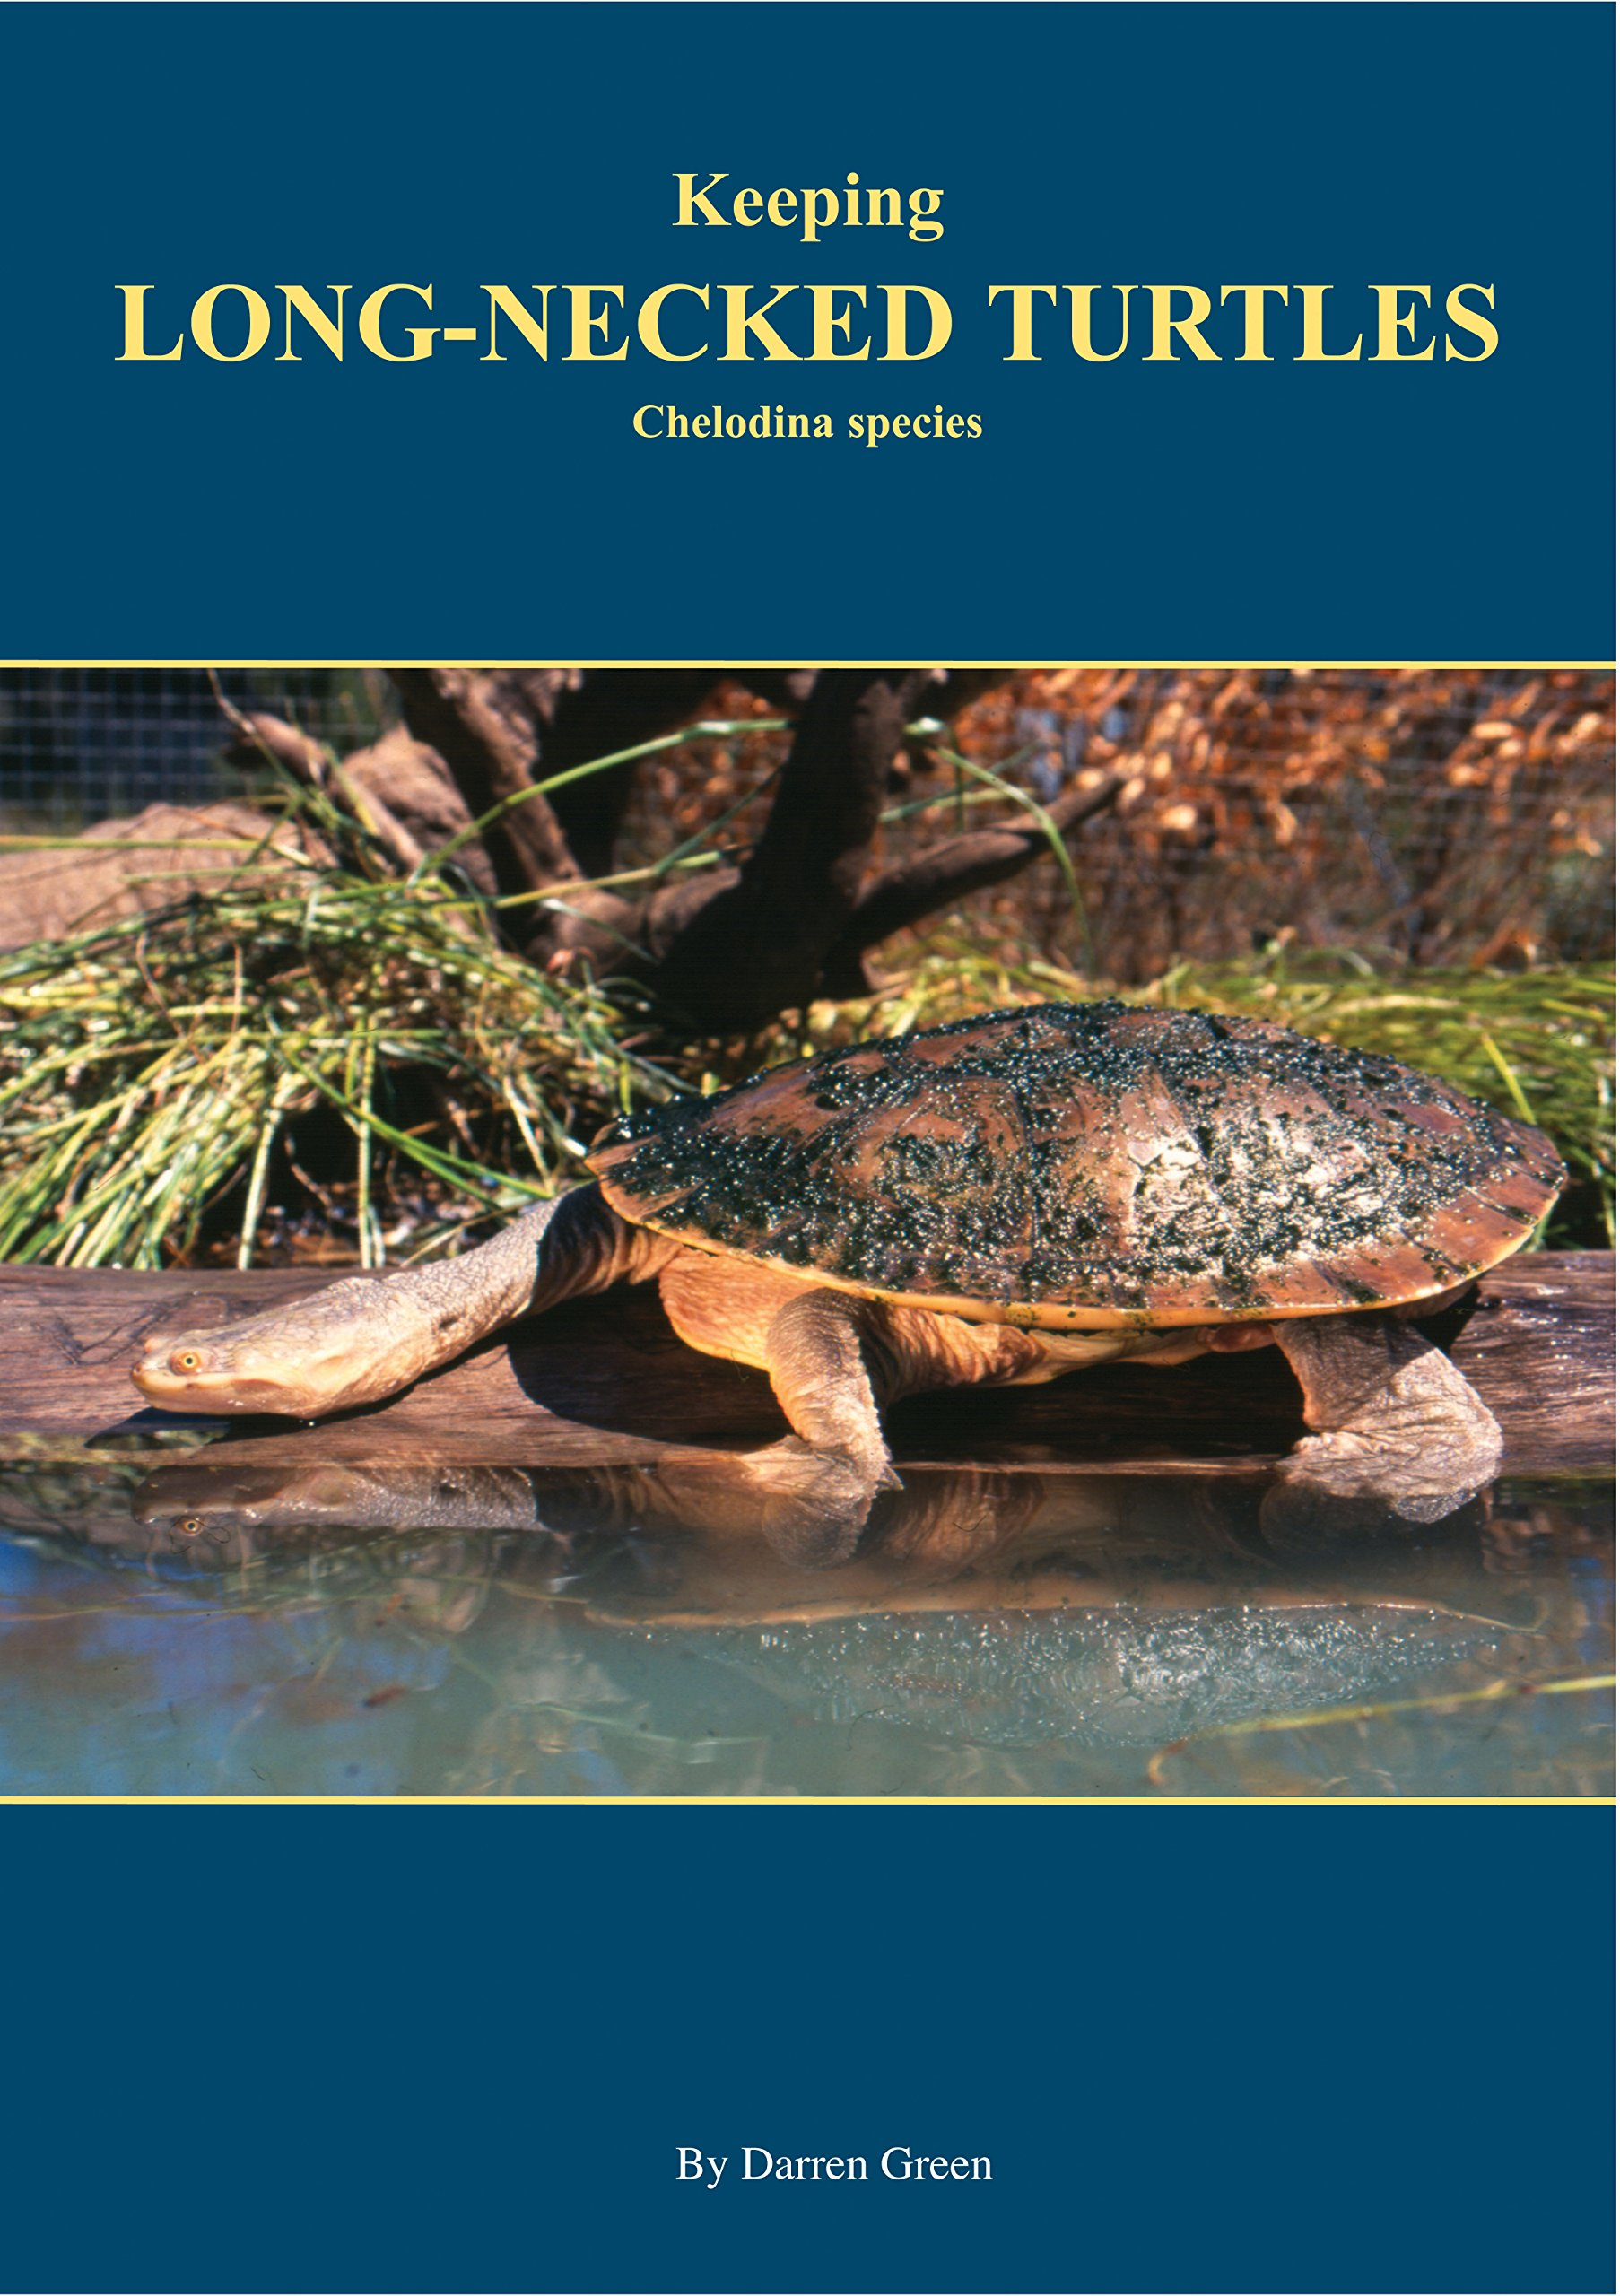 Download Keeping Long-necked turtles: Chelodina species PDF